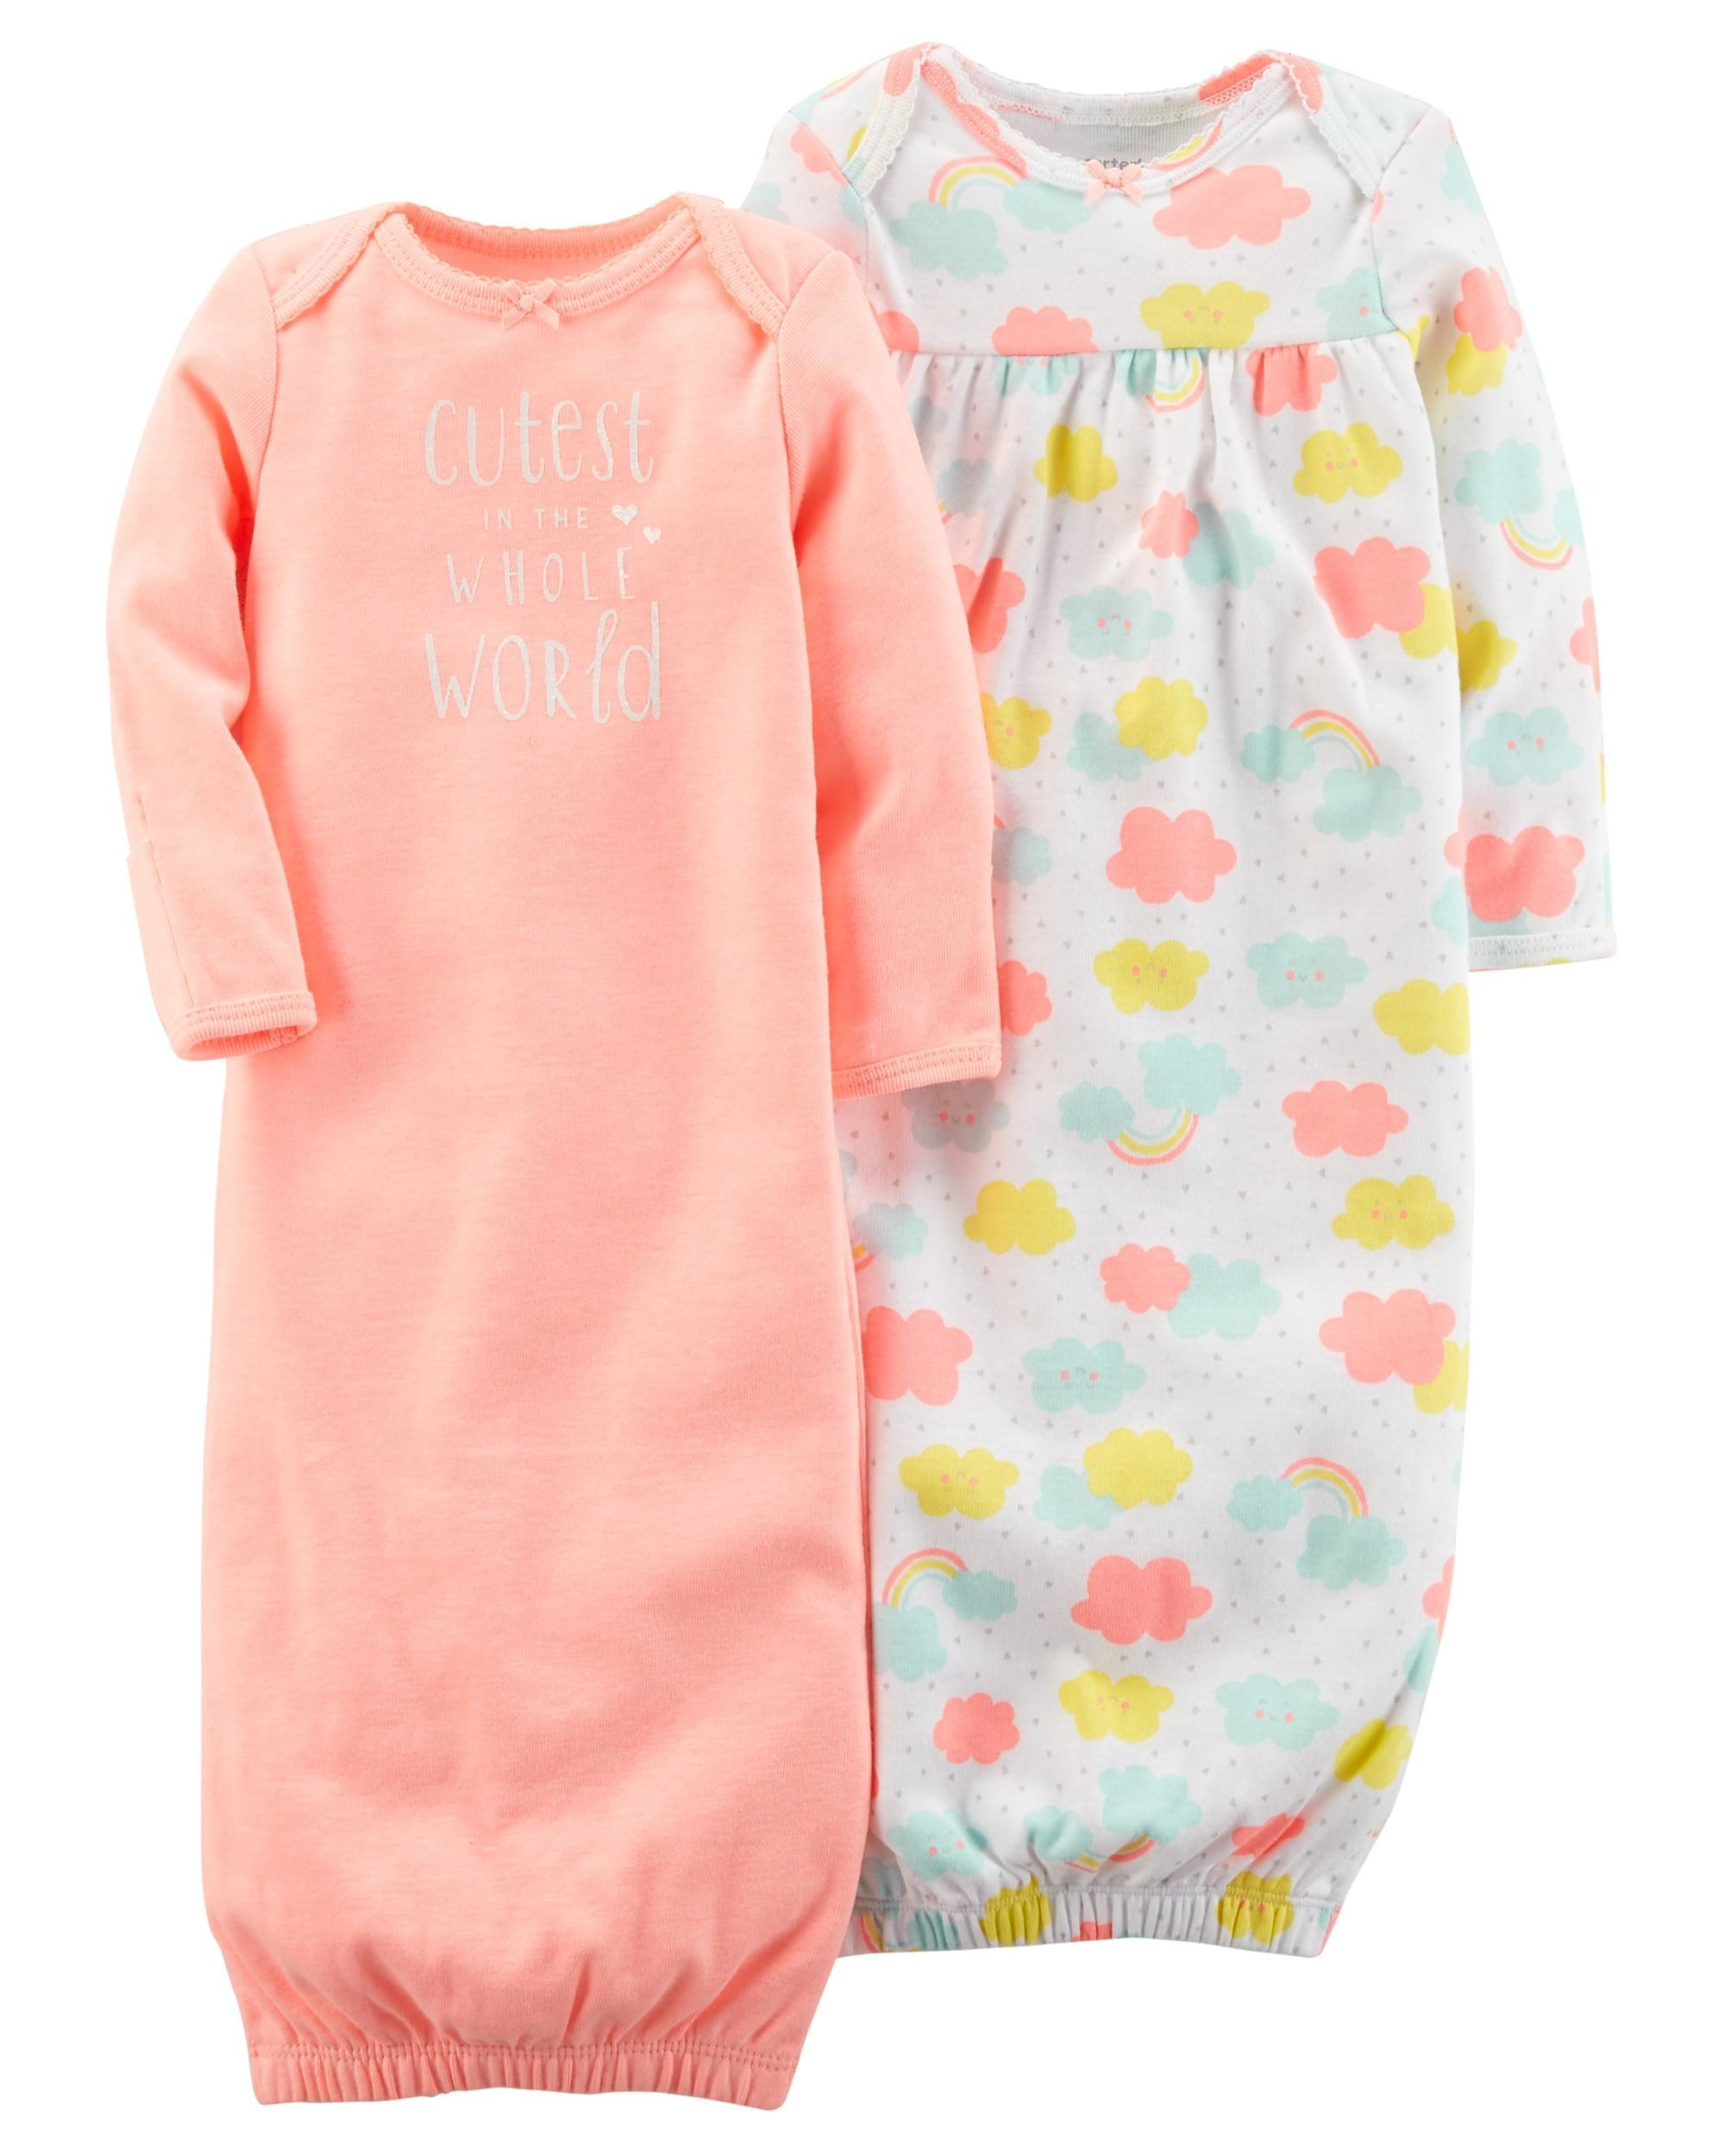 784070c5a Crafted with babysoft cotton and adorable prints, these gowns feature  cinched hems to keep her toes cozy all night.